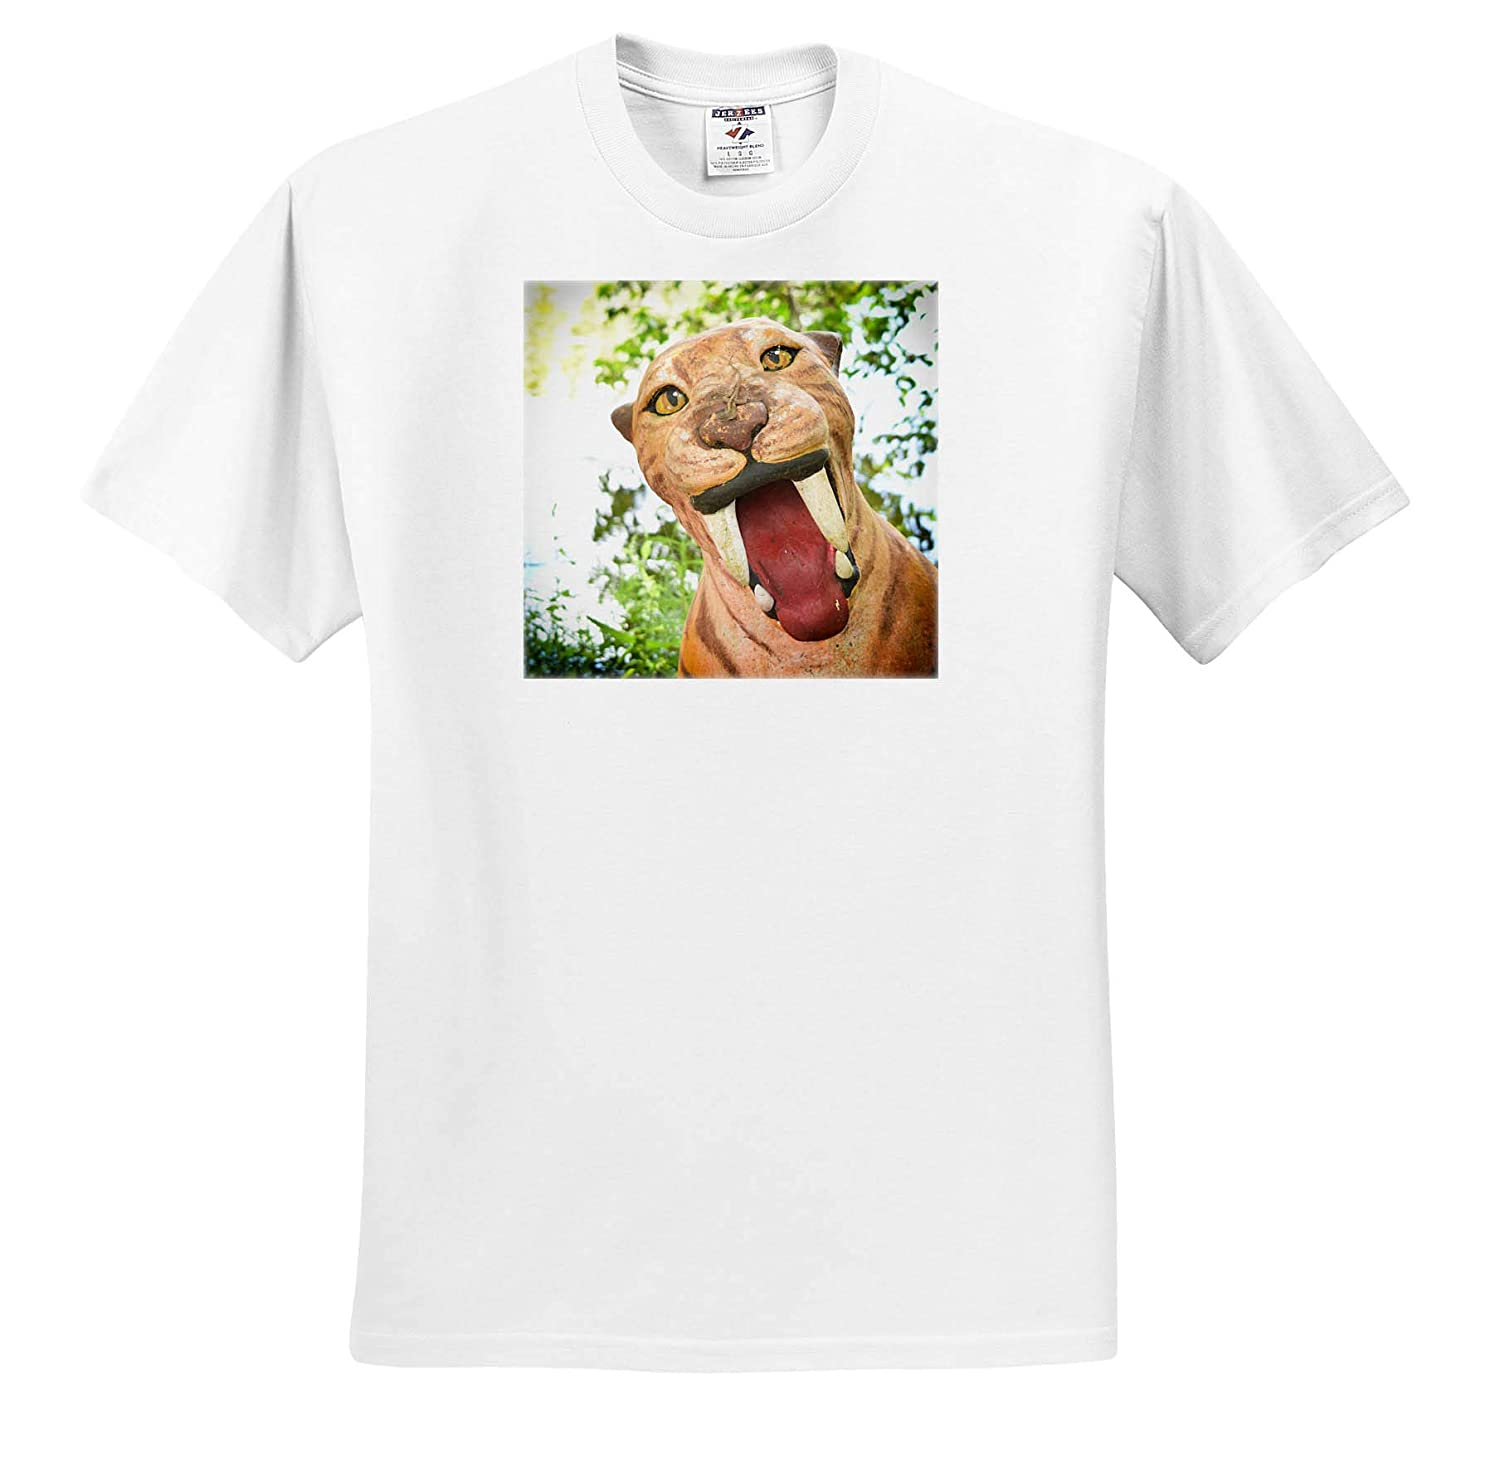 3dRose Susans Zoo Crew Animal T-Shirts Saber Tooth Tiger Statue with Lizard